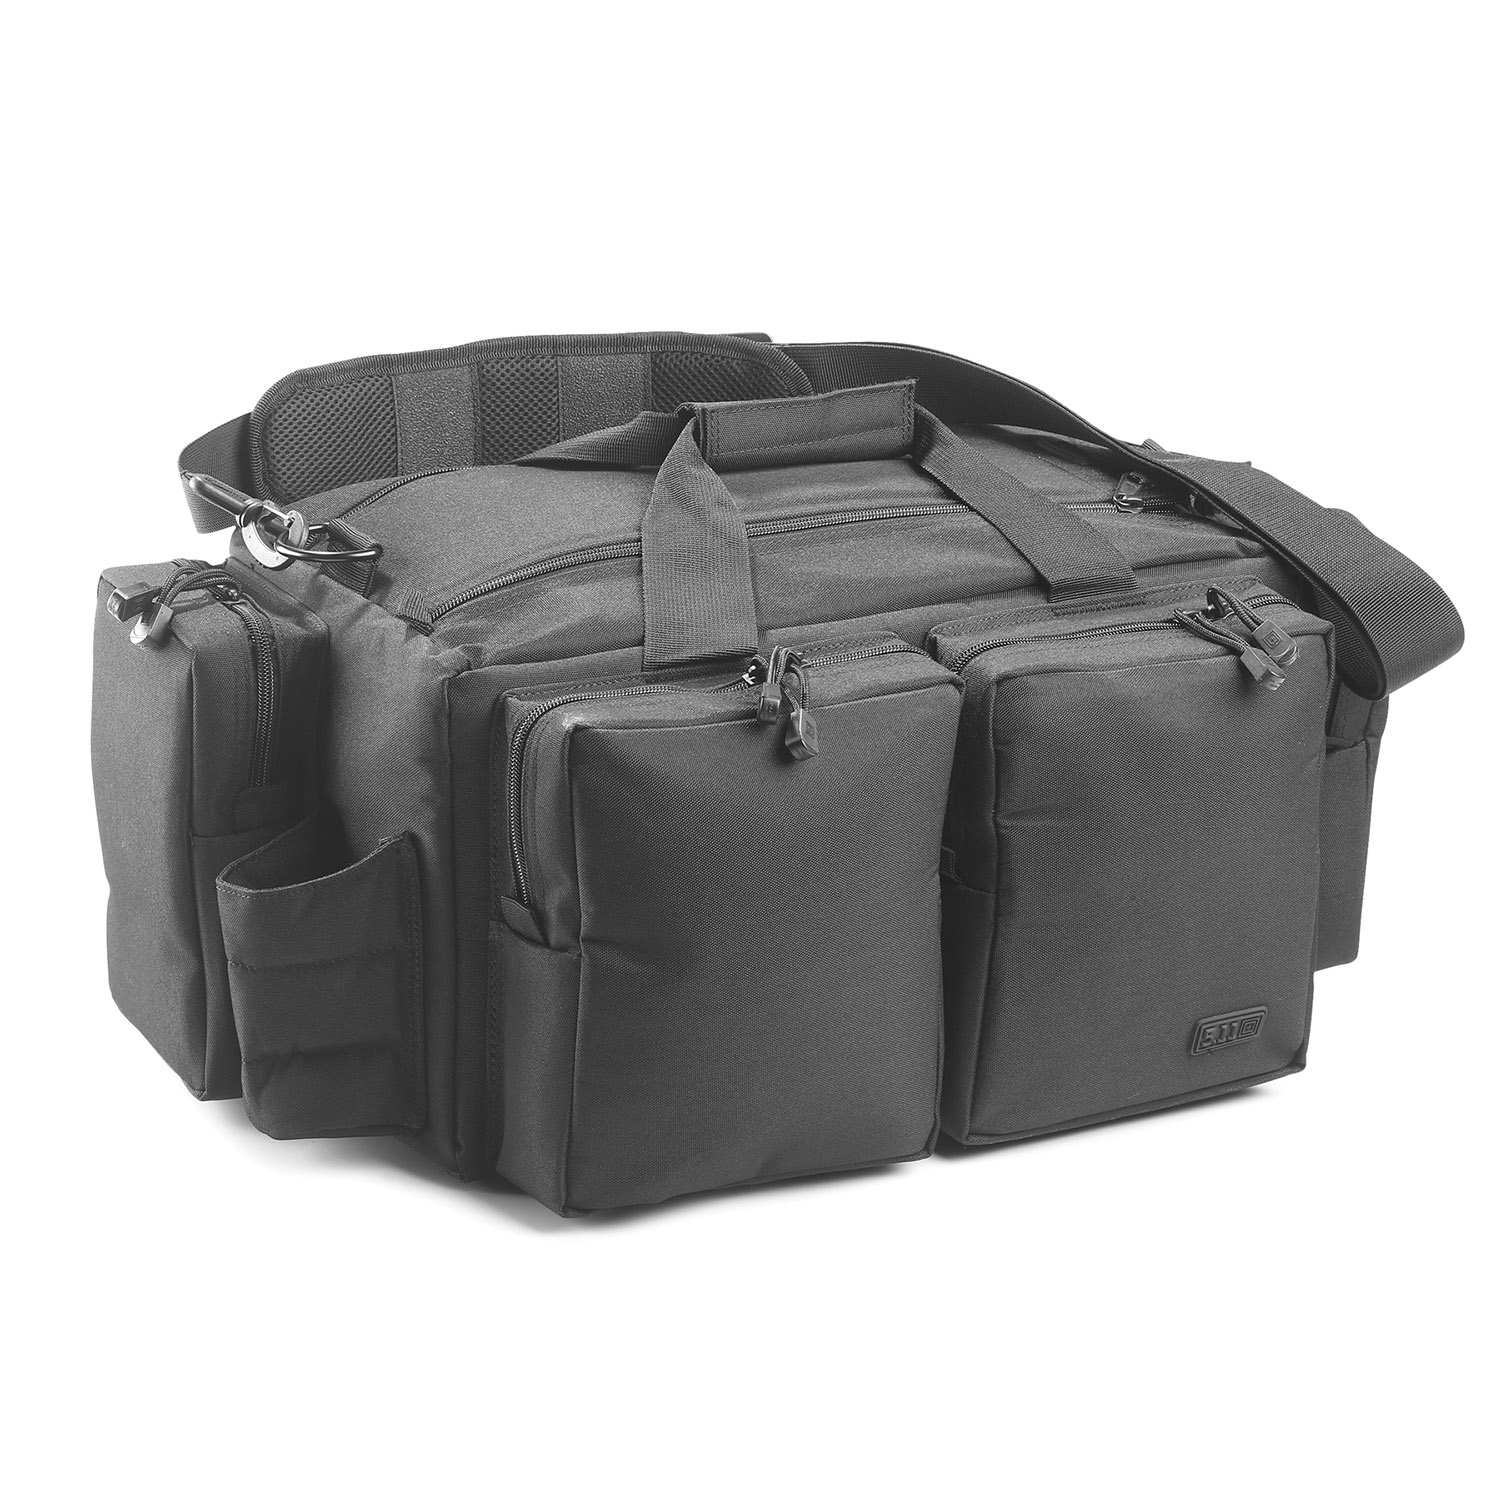 5.11 Tactical Range Ready Gear Bag